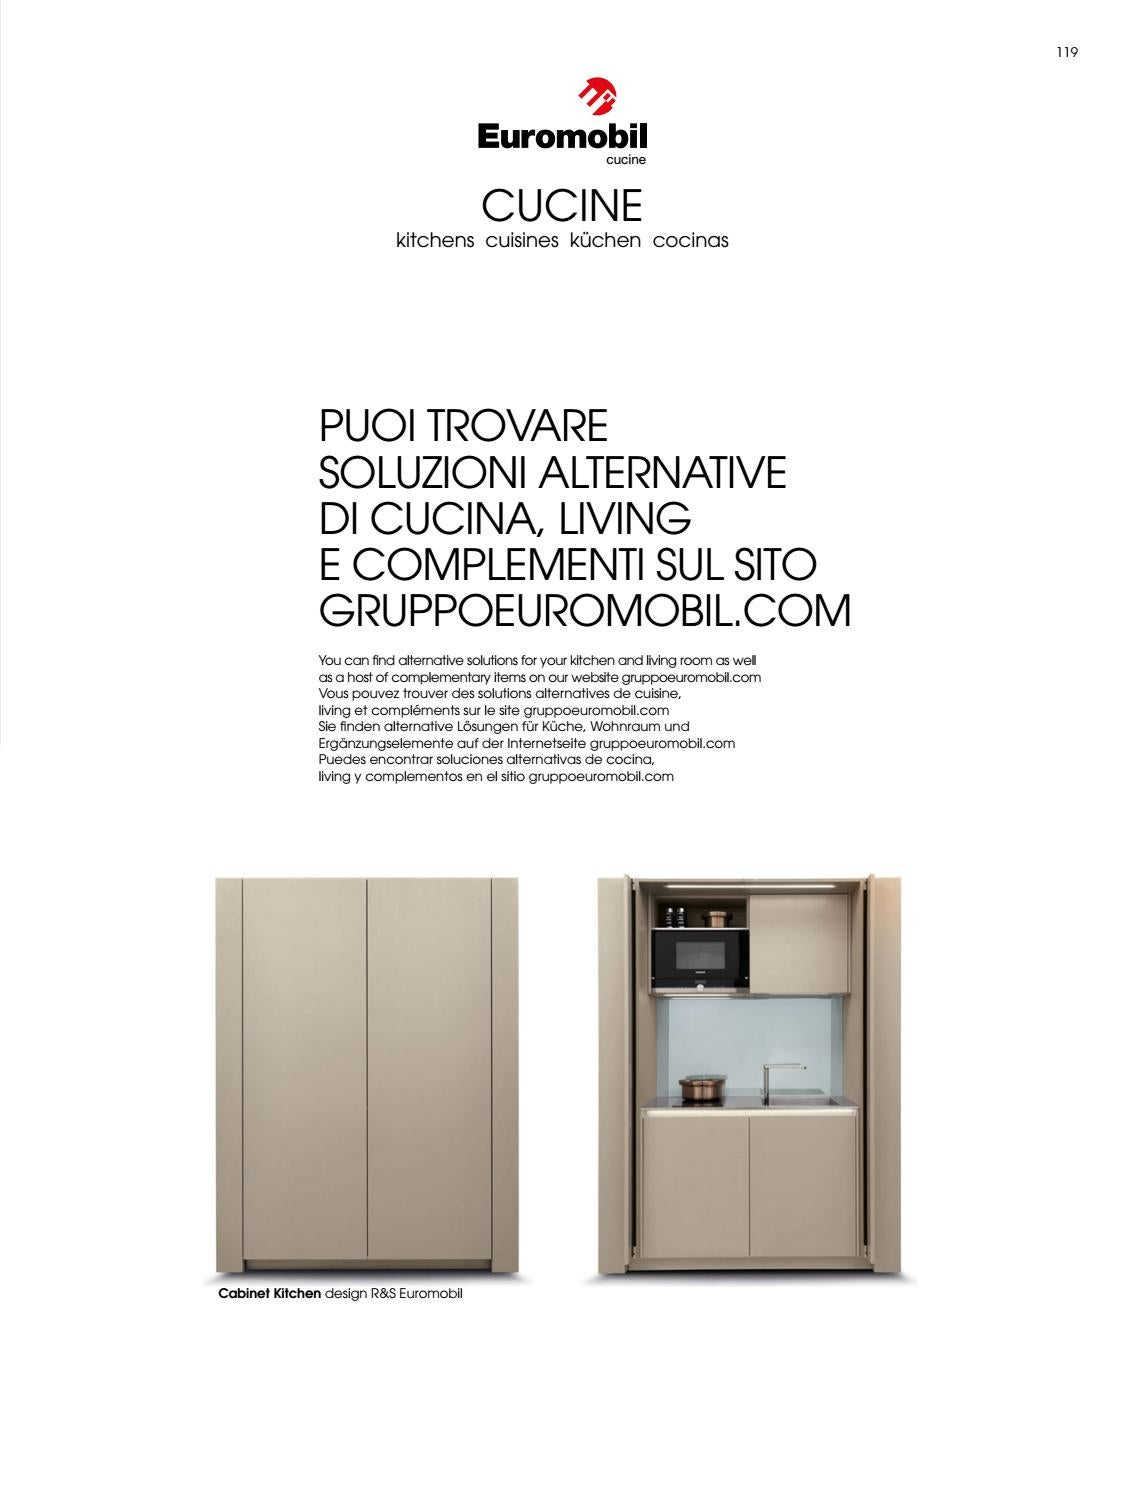 CATALOGO OFFICE SOLUTION by Gruppo Euromobil - issuu